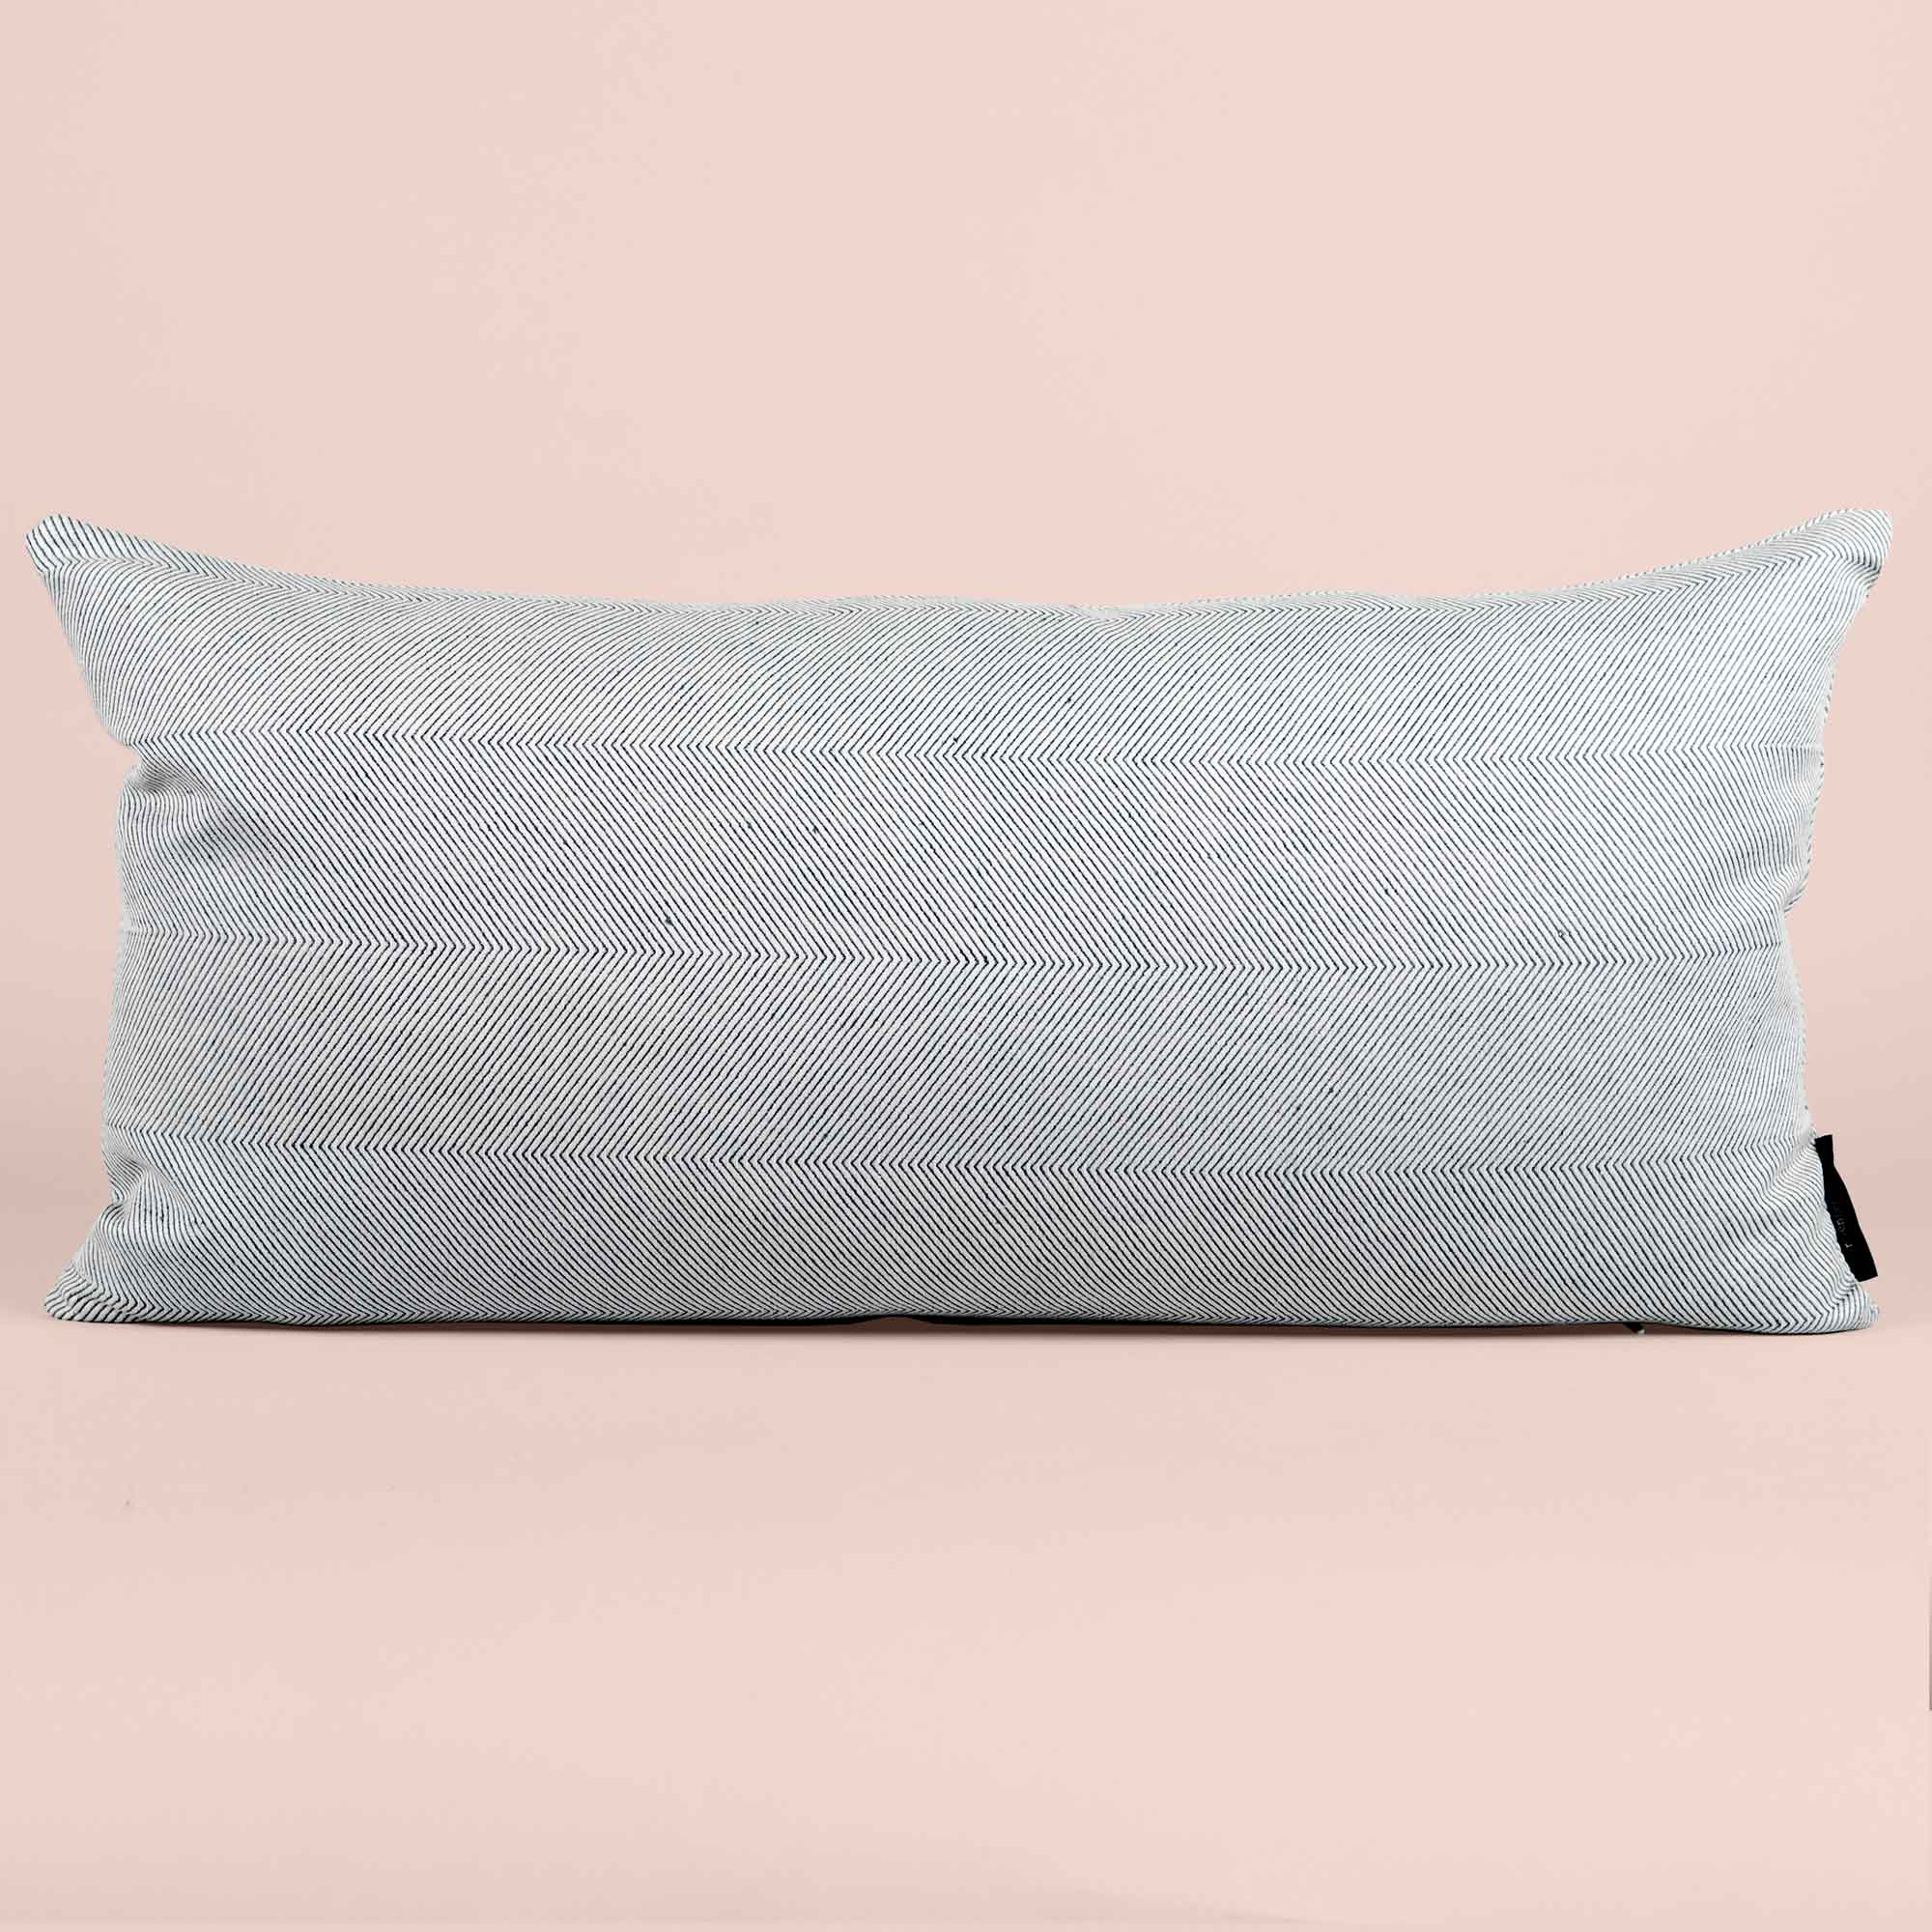 Rectangular cushion linen/cotton light blue design by Anne Rosenberg, RosenbergCph